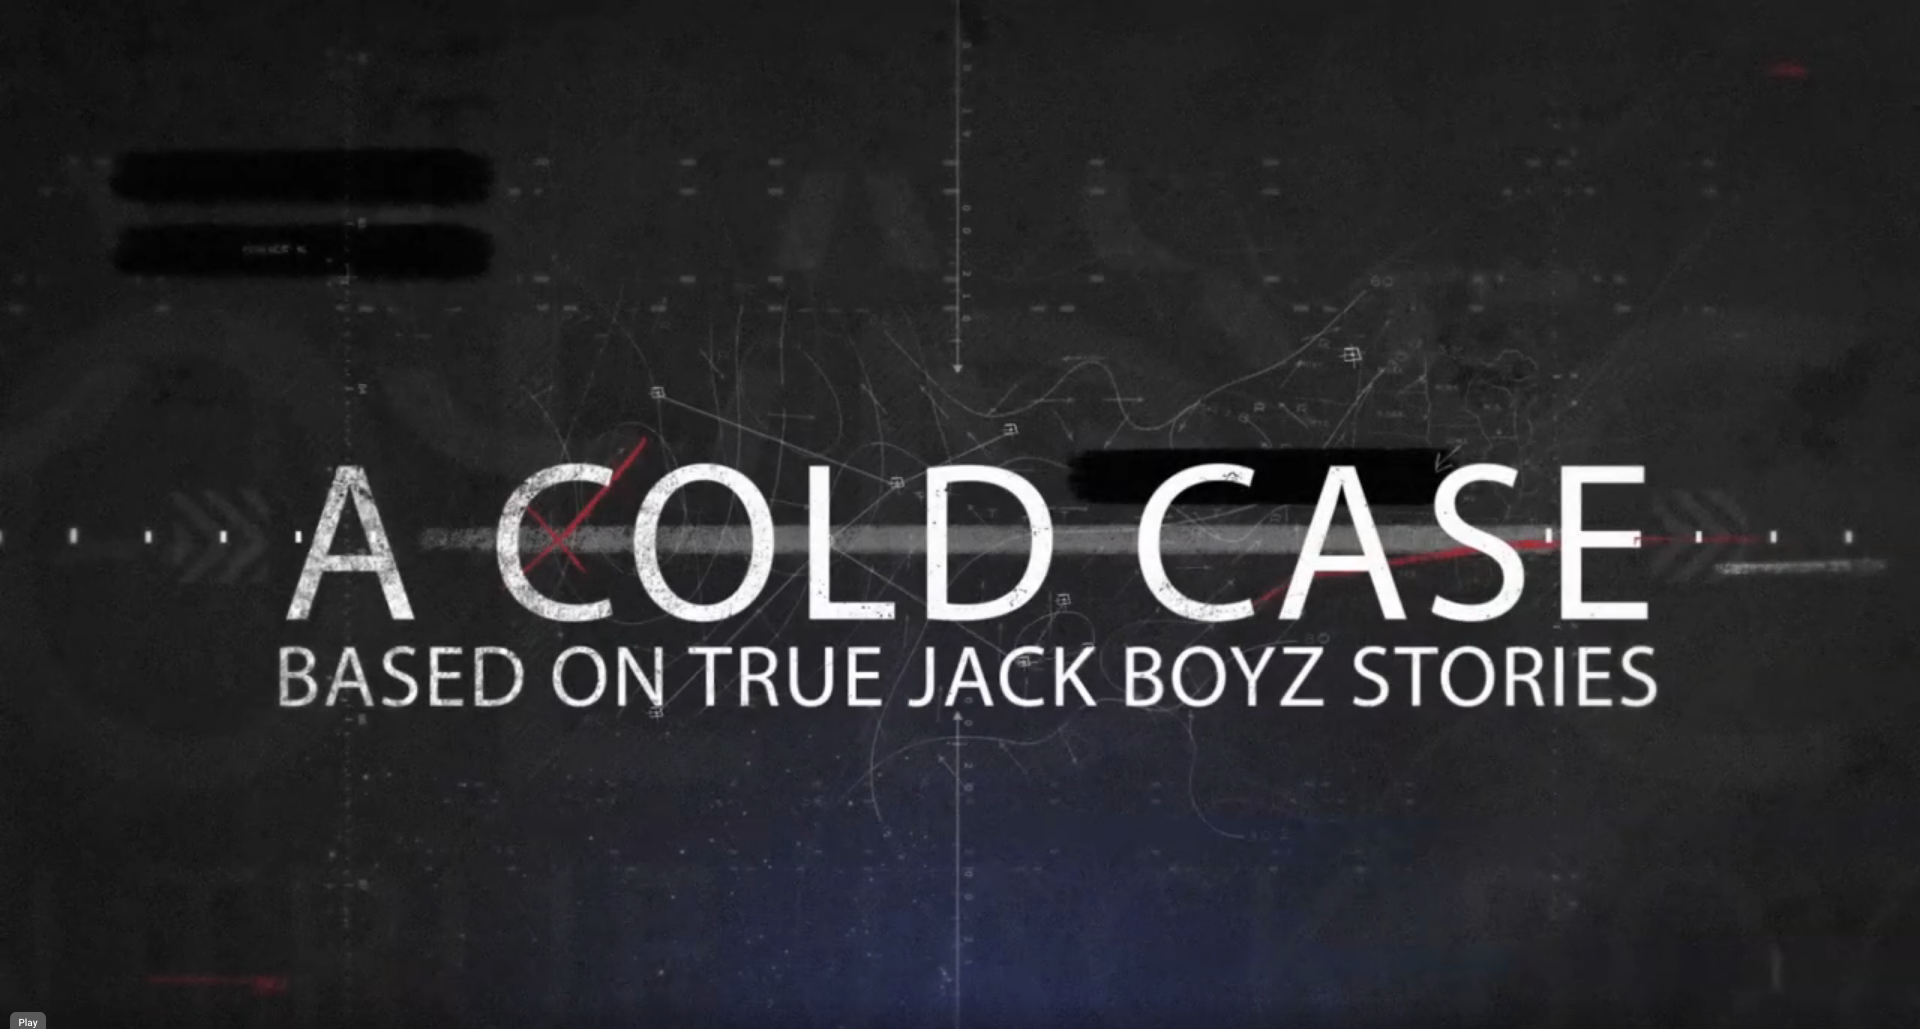 Movie Night Mondays – A Cold Case: Based on True Jack Boyz Stories (Urban Crime Drama Series)